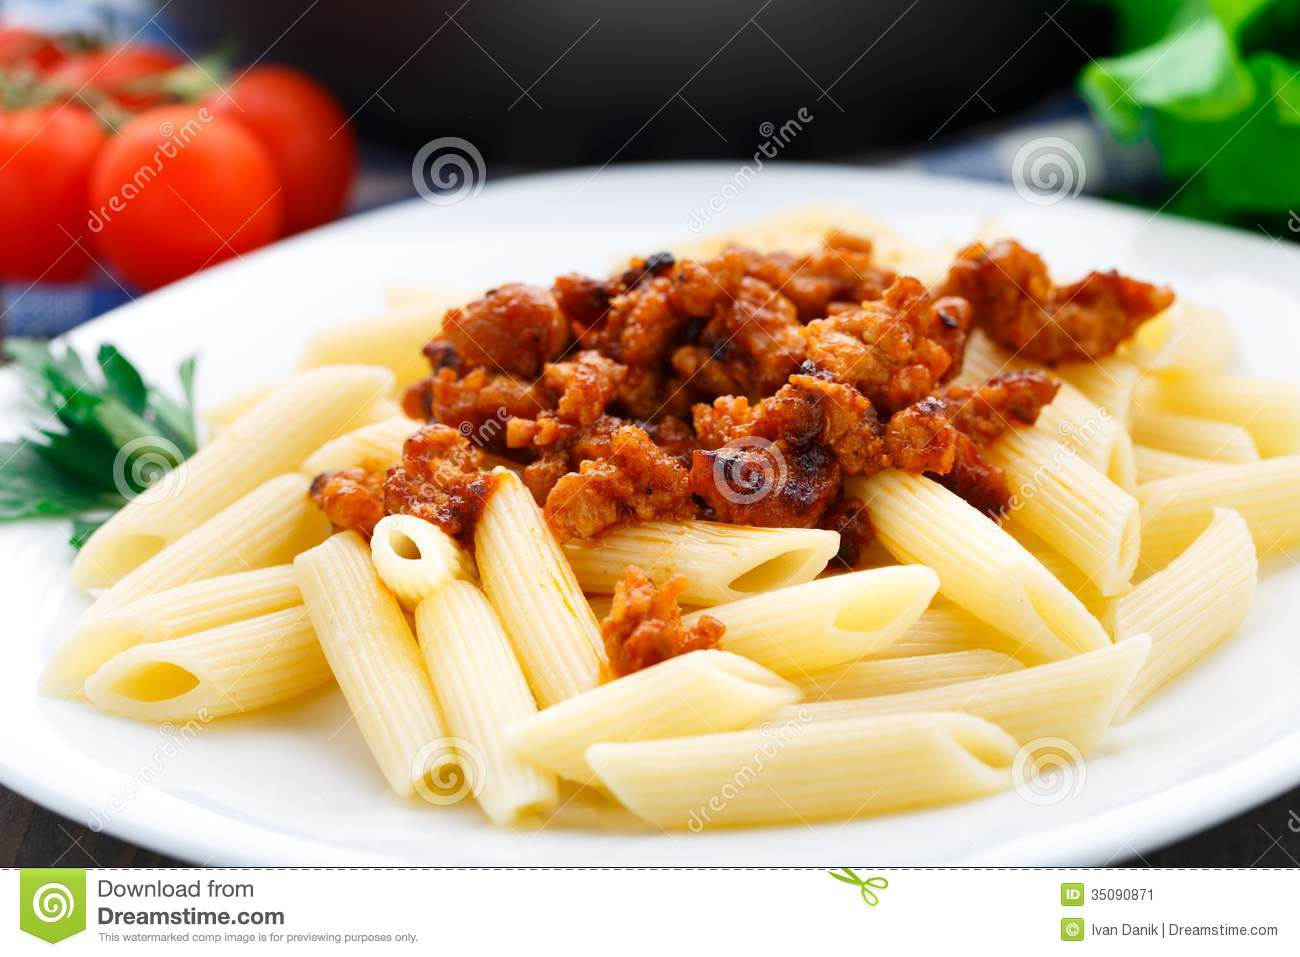 Pasta With Bolognese Sauce Stock Image - Image: 35090871